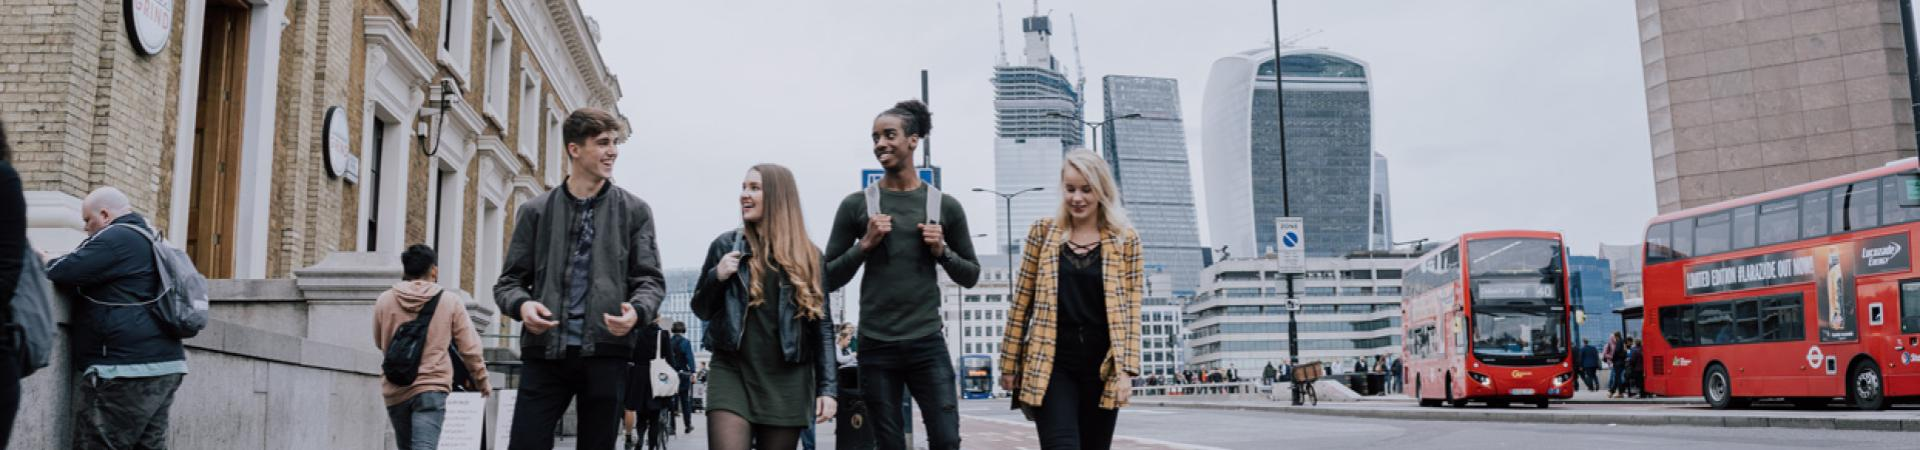 Students walking to their accommodation in London